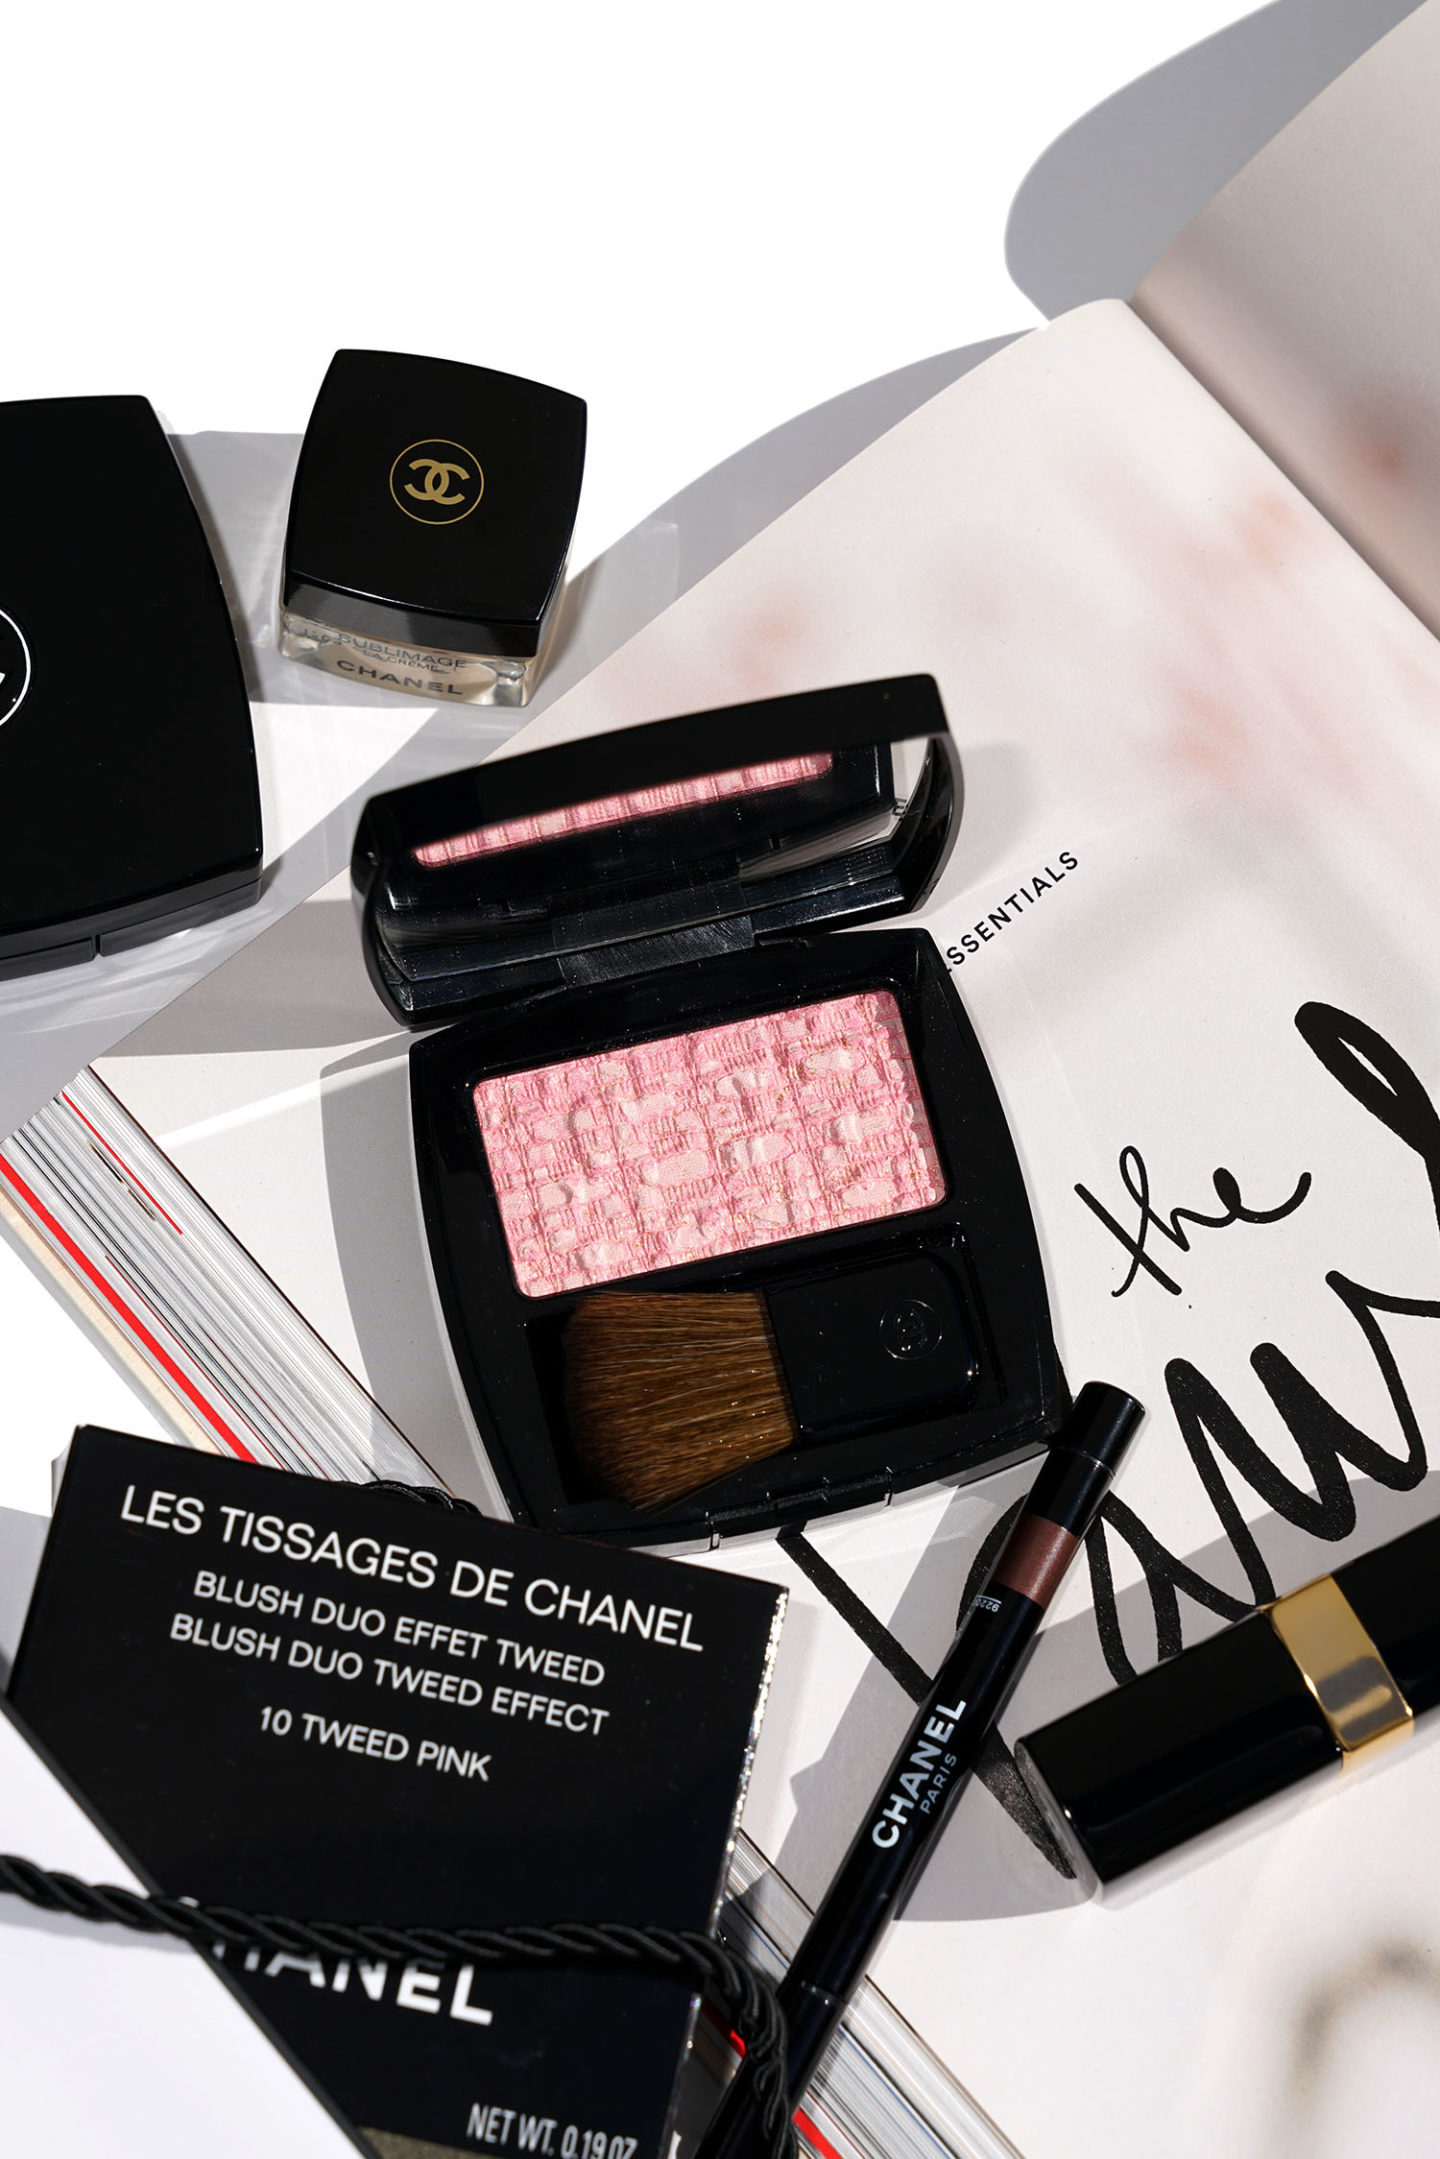 Nouveau Chanel Les Tissages de Chanel Tweed Pink Blush Le Look Book Beauty